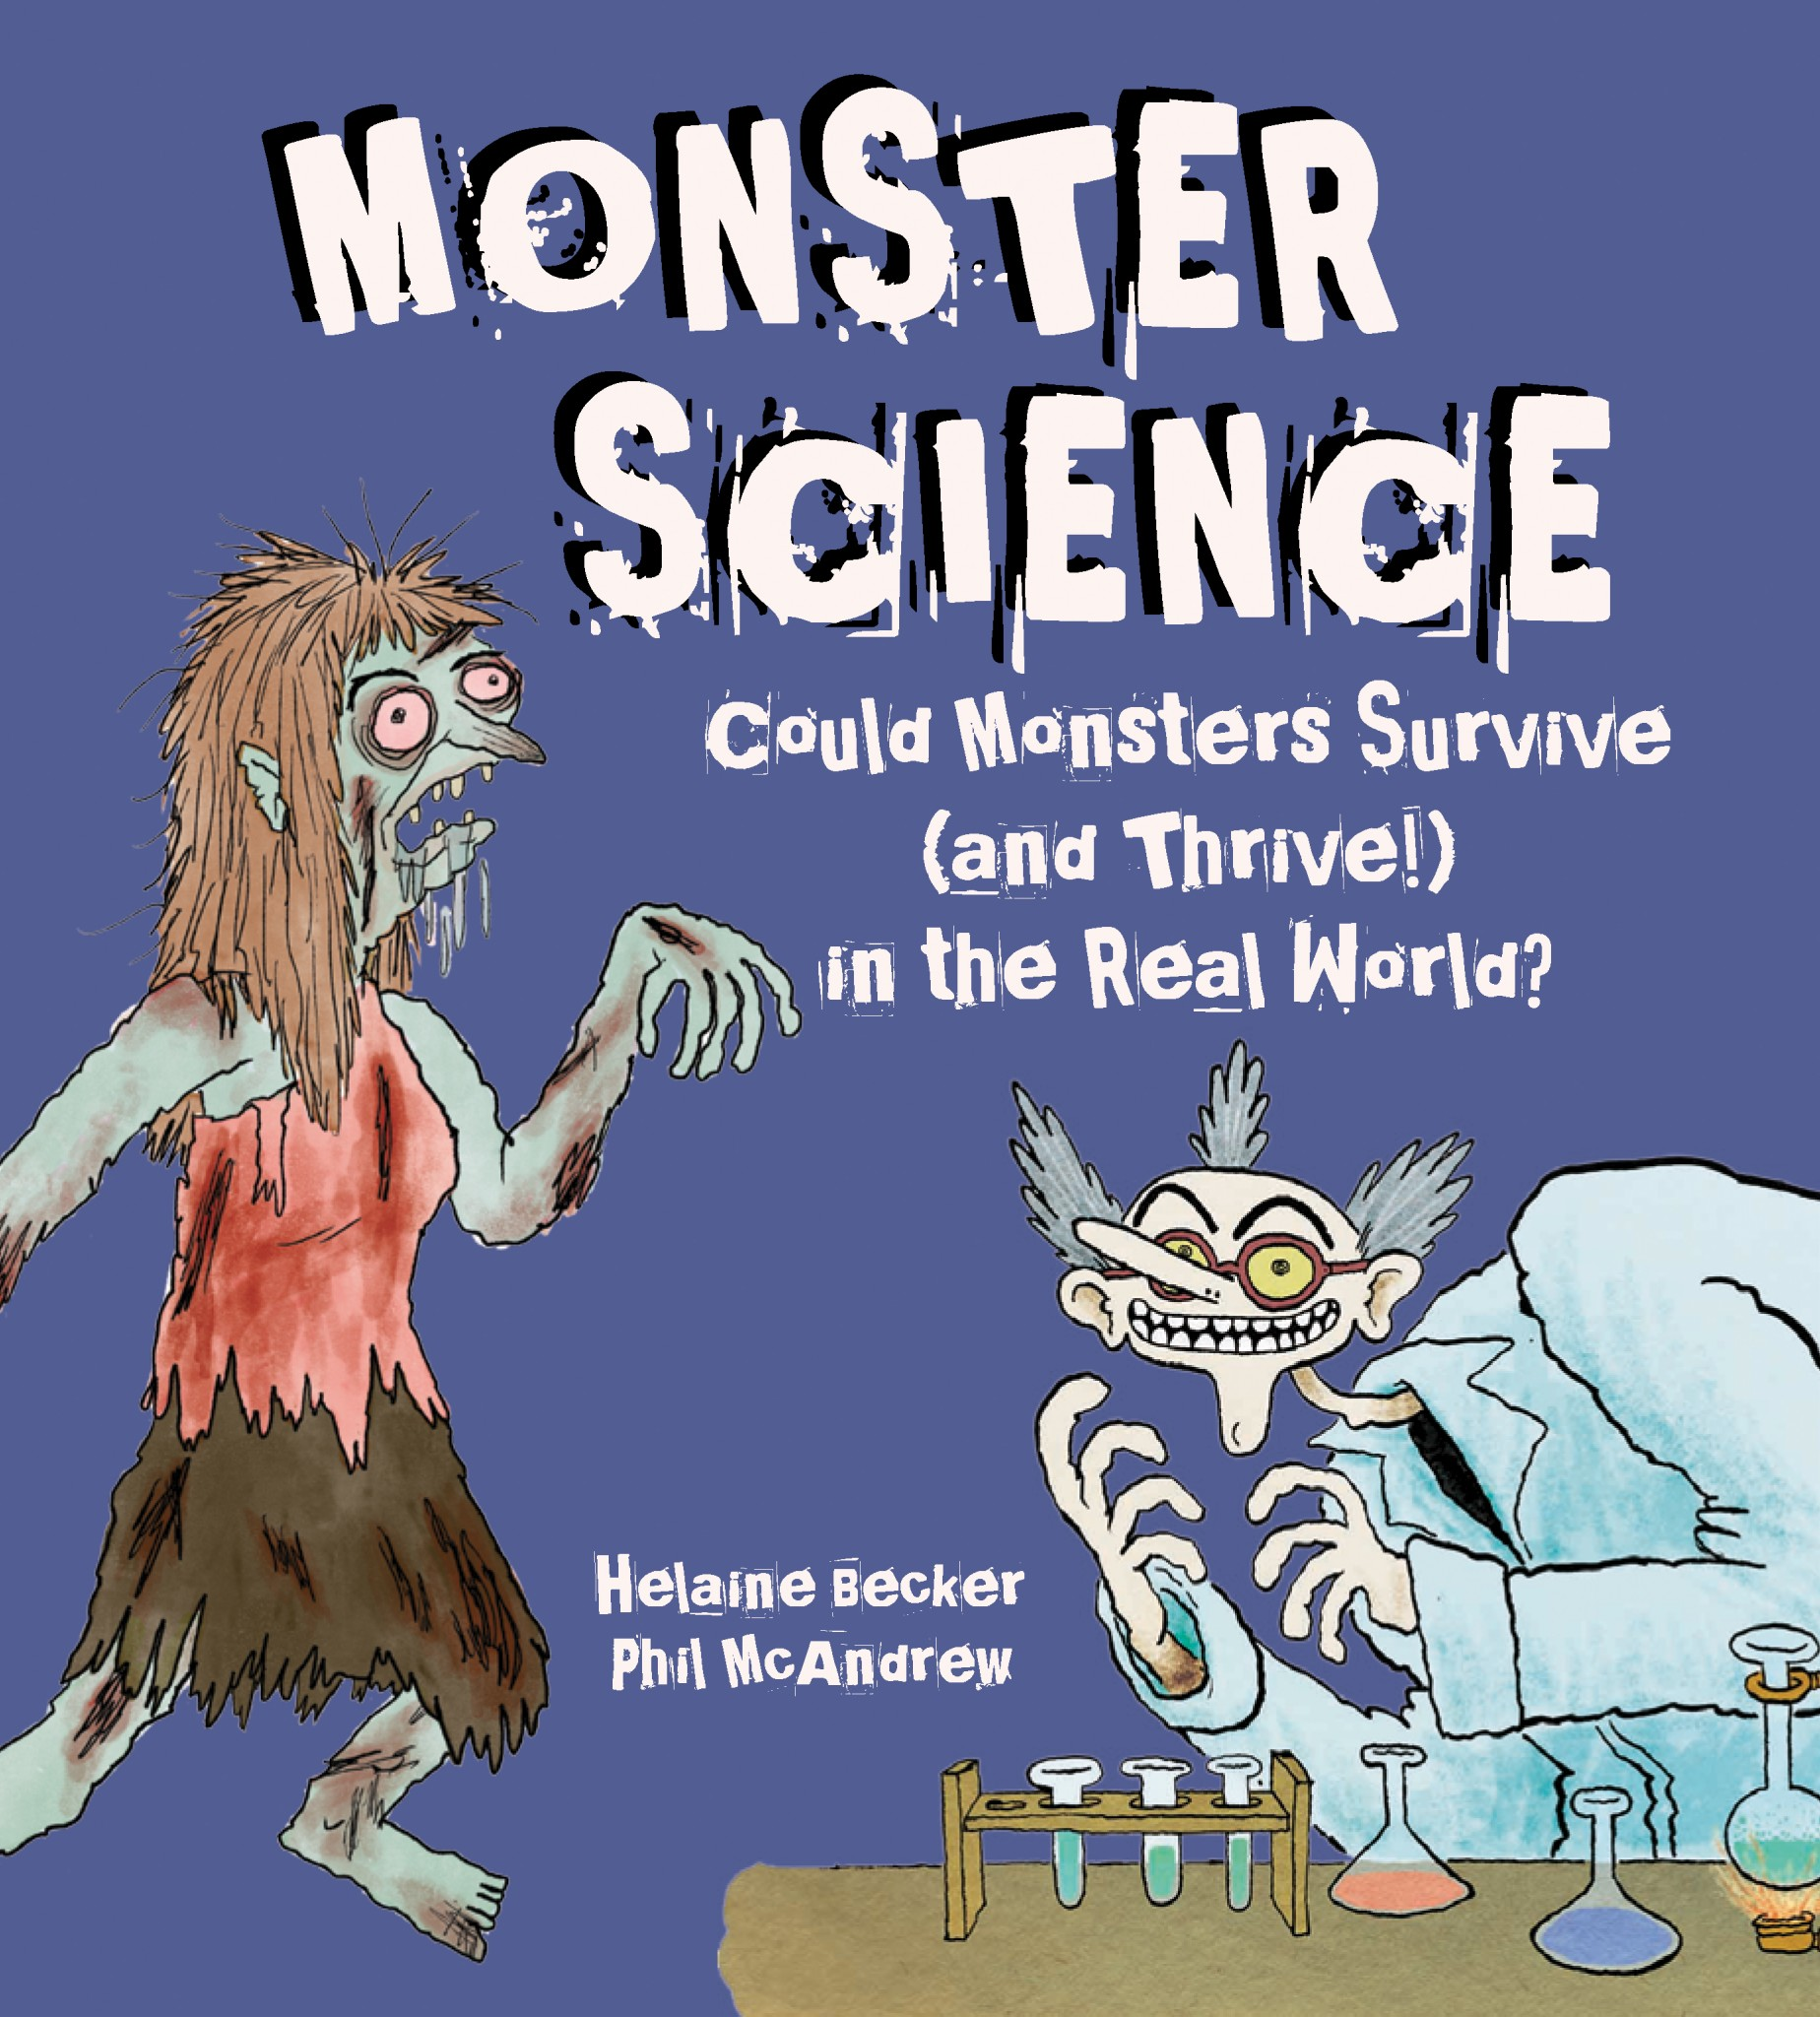 Monster Science: Could Monsters Survive (and Thrive!) in the Real World?